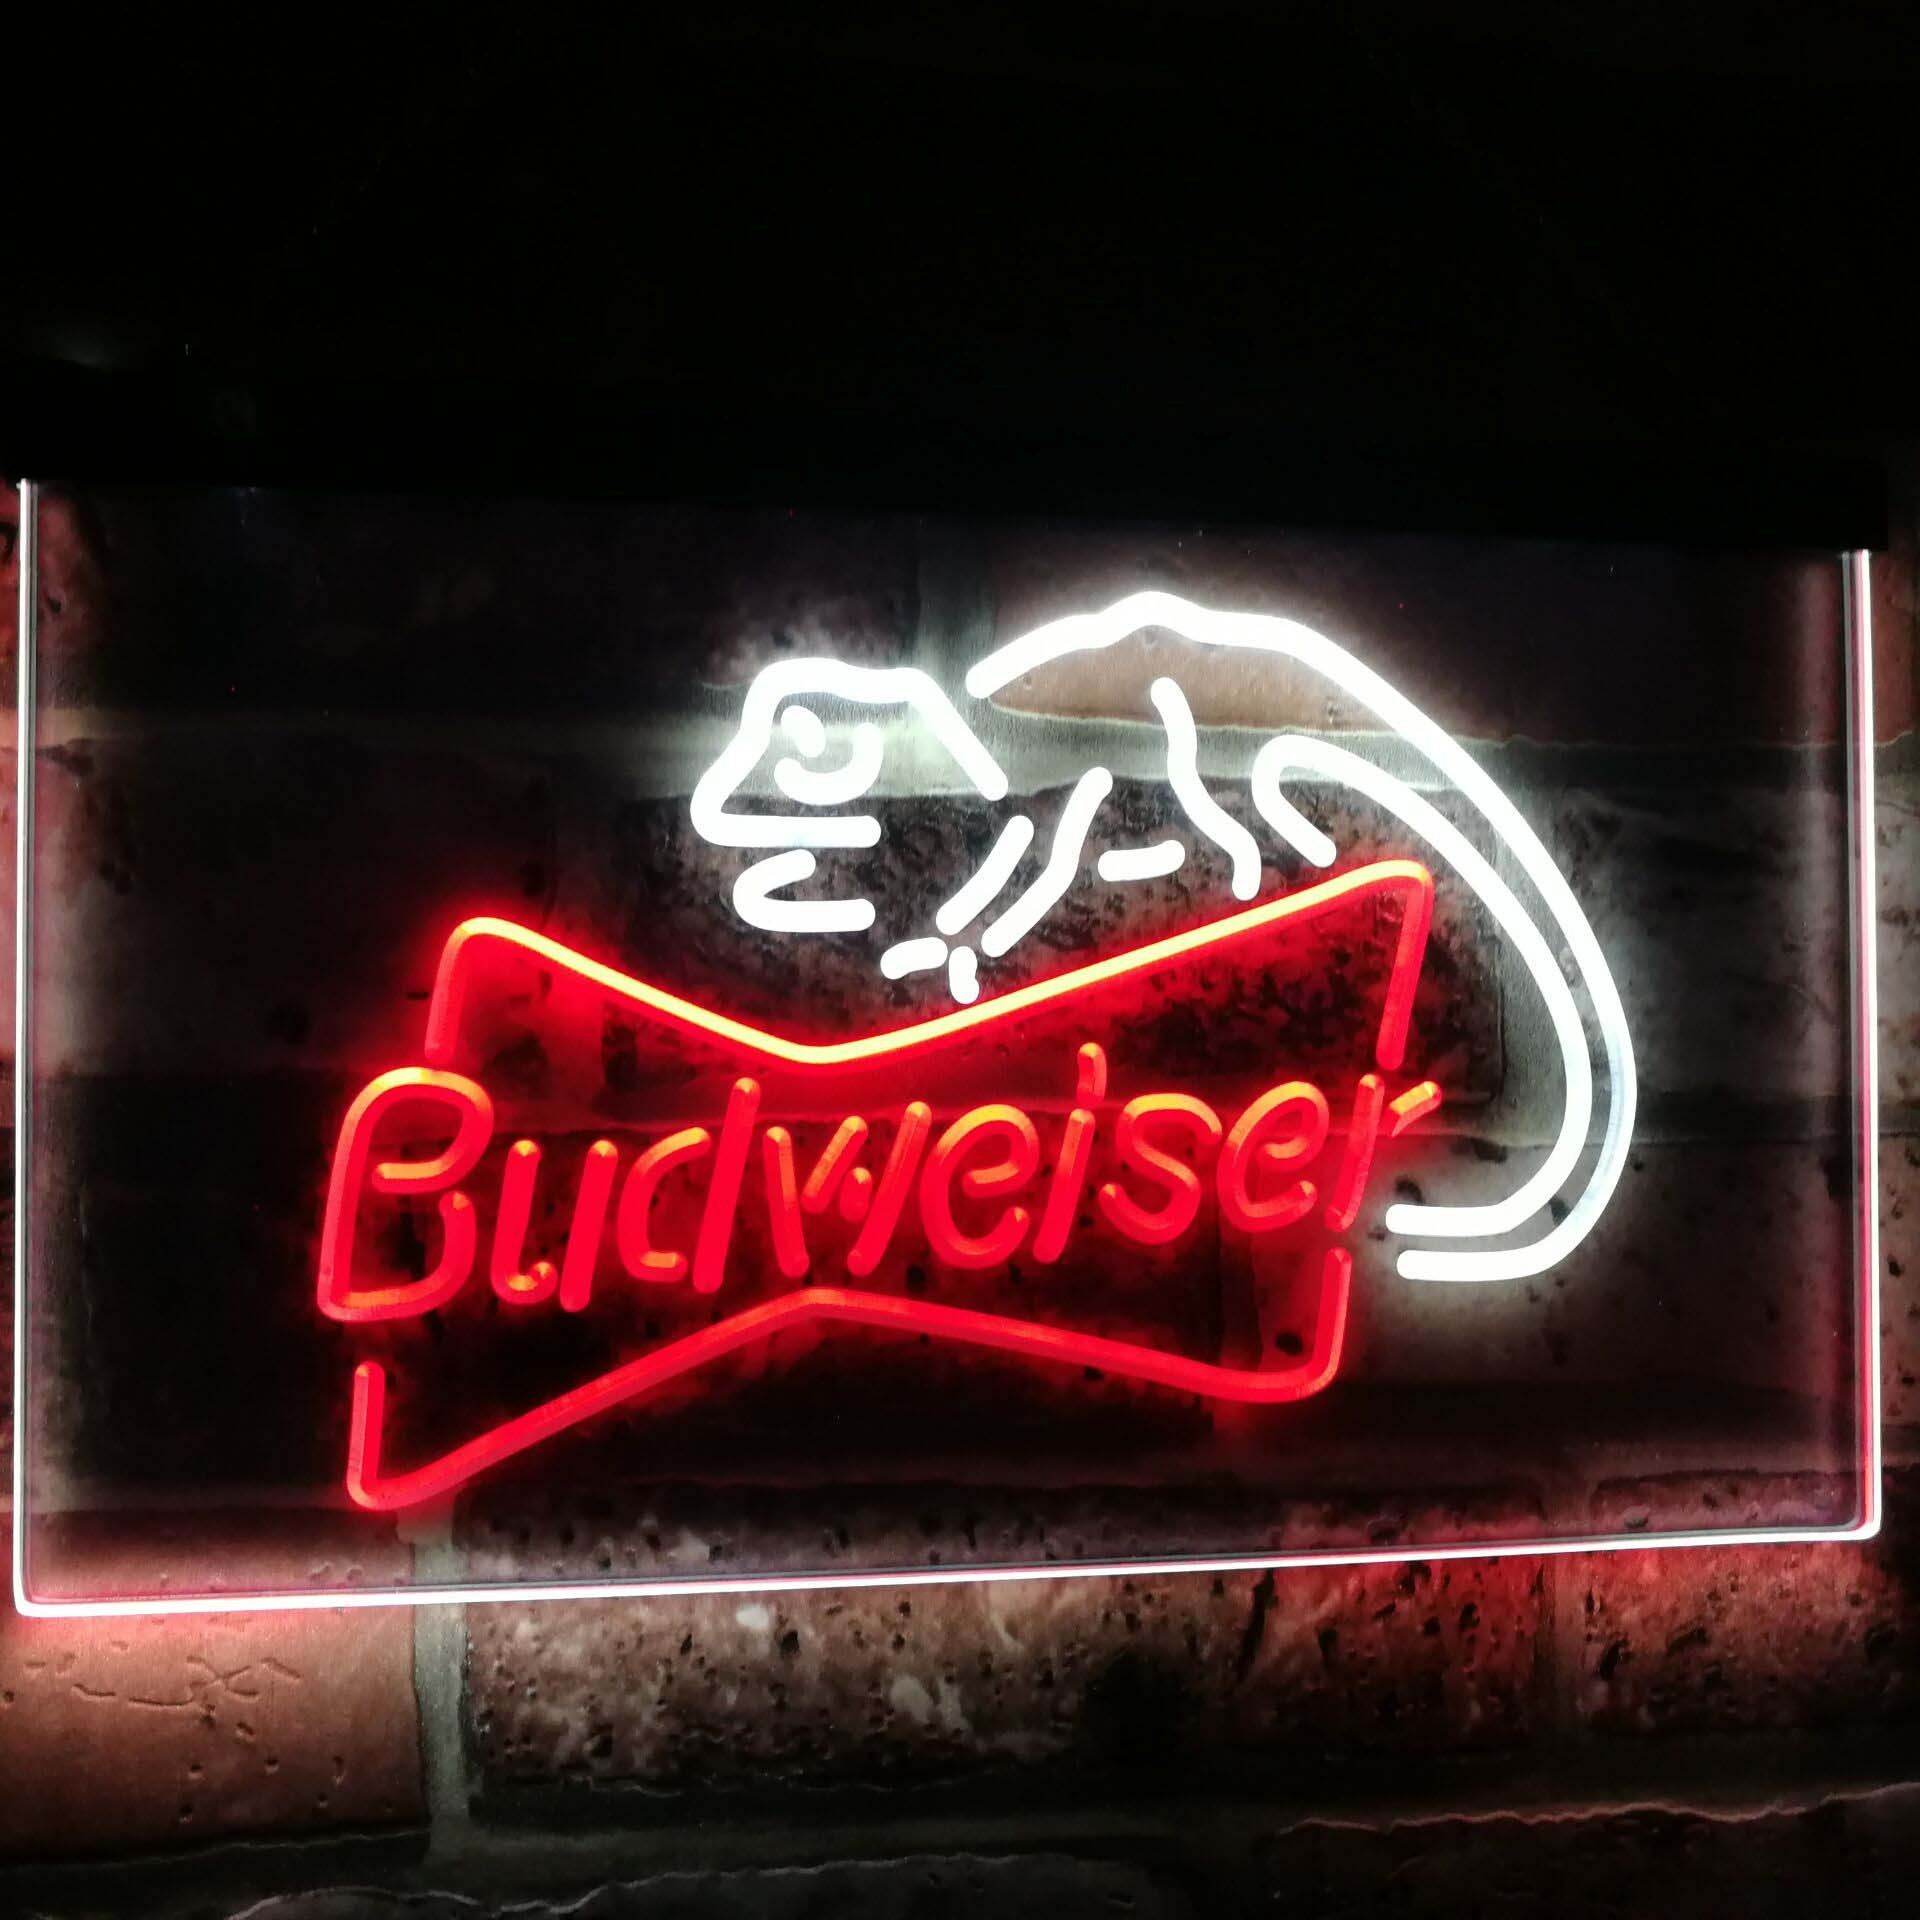 Budweiser Lizard Bar Decoration Gift Dual Color Led Neon Light Signs St6 A2084 Led Neon Signs Neon Signs Neon Light Signs